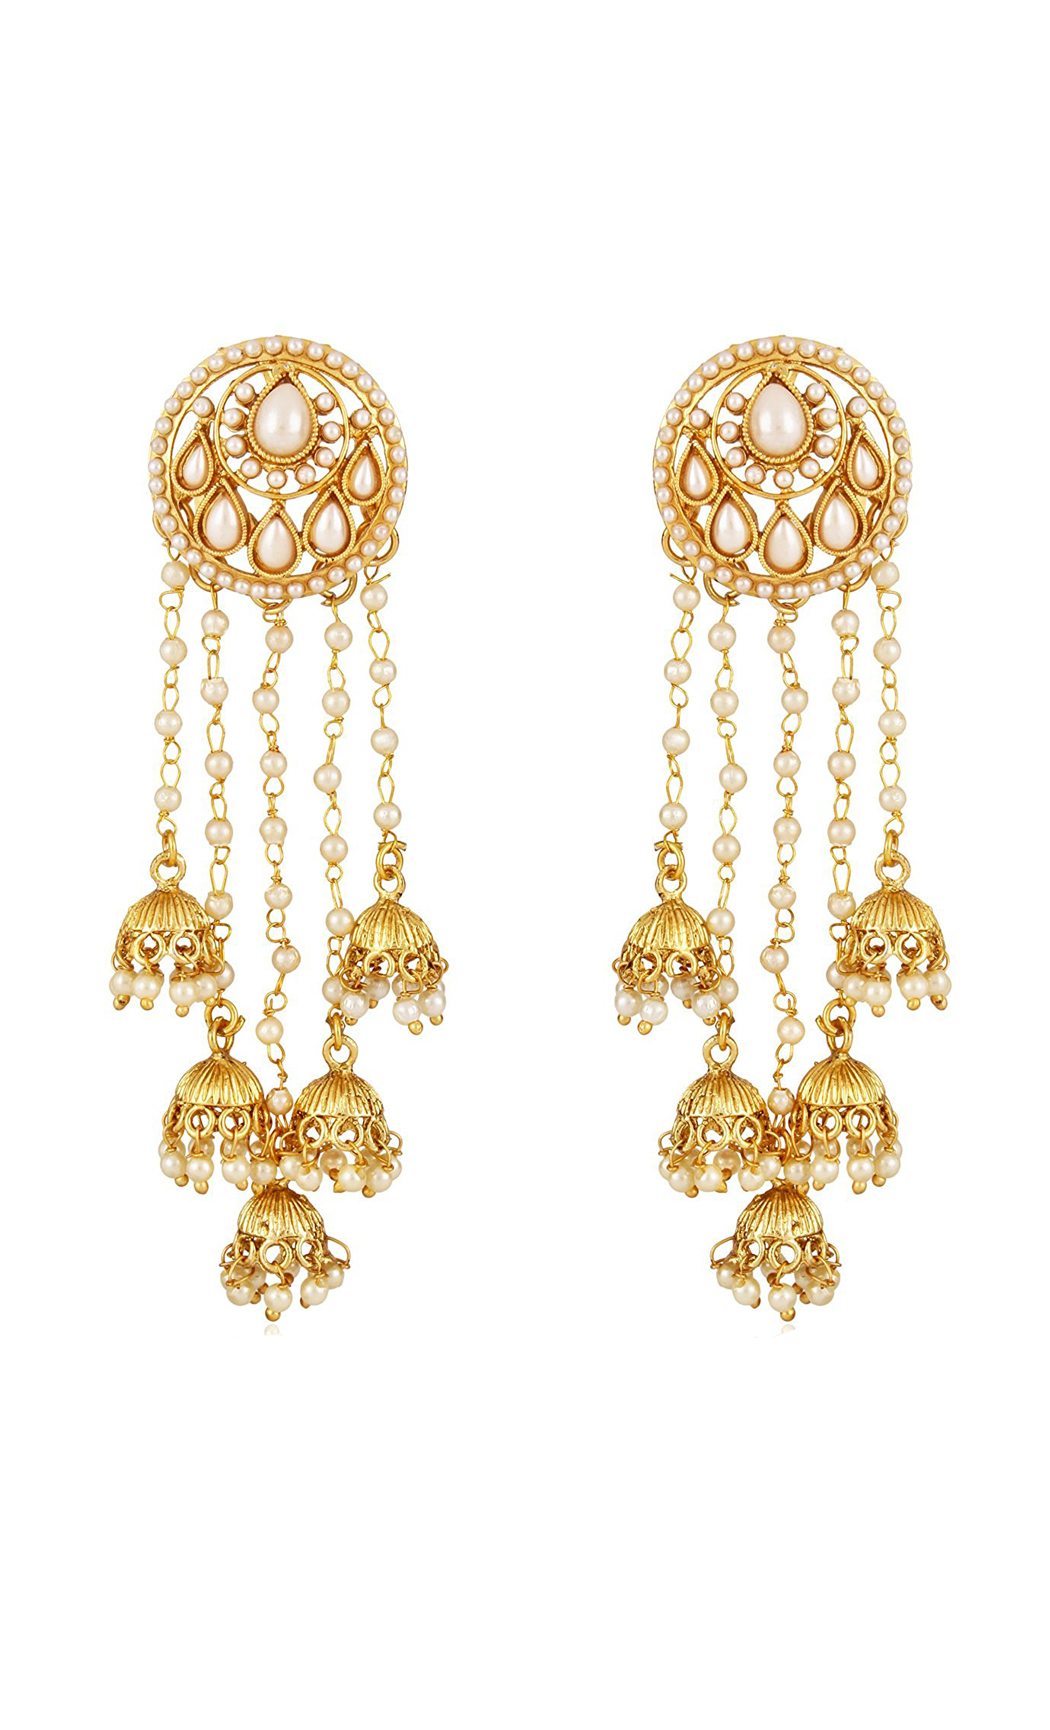 Gold Dangler Earrings with Small Jhumkas and Pearls | Wedding Earrings | Buy Online